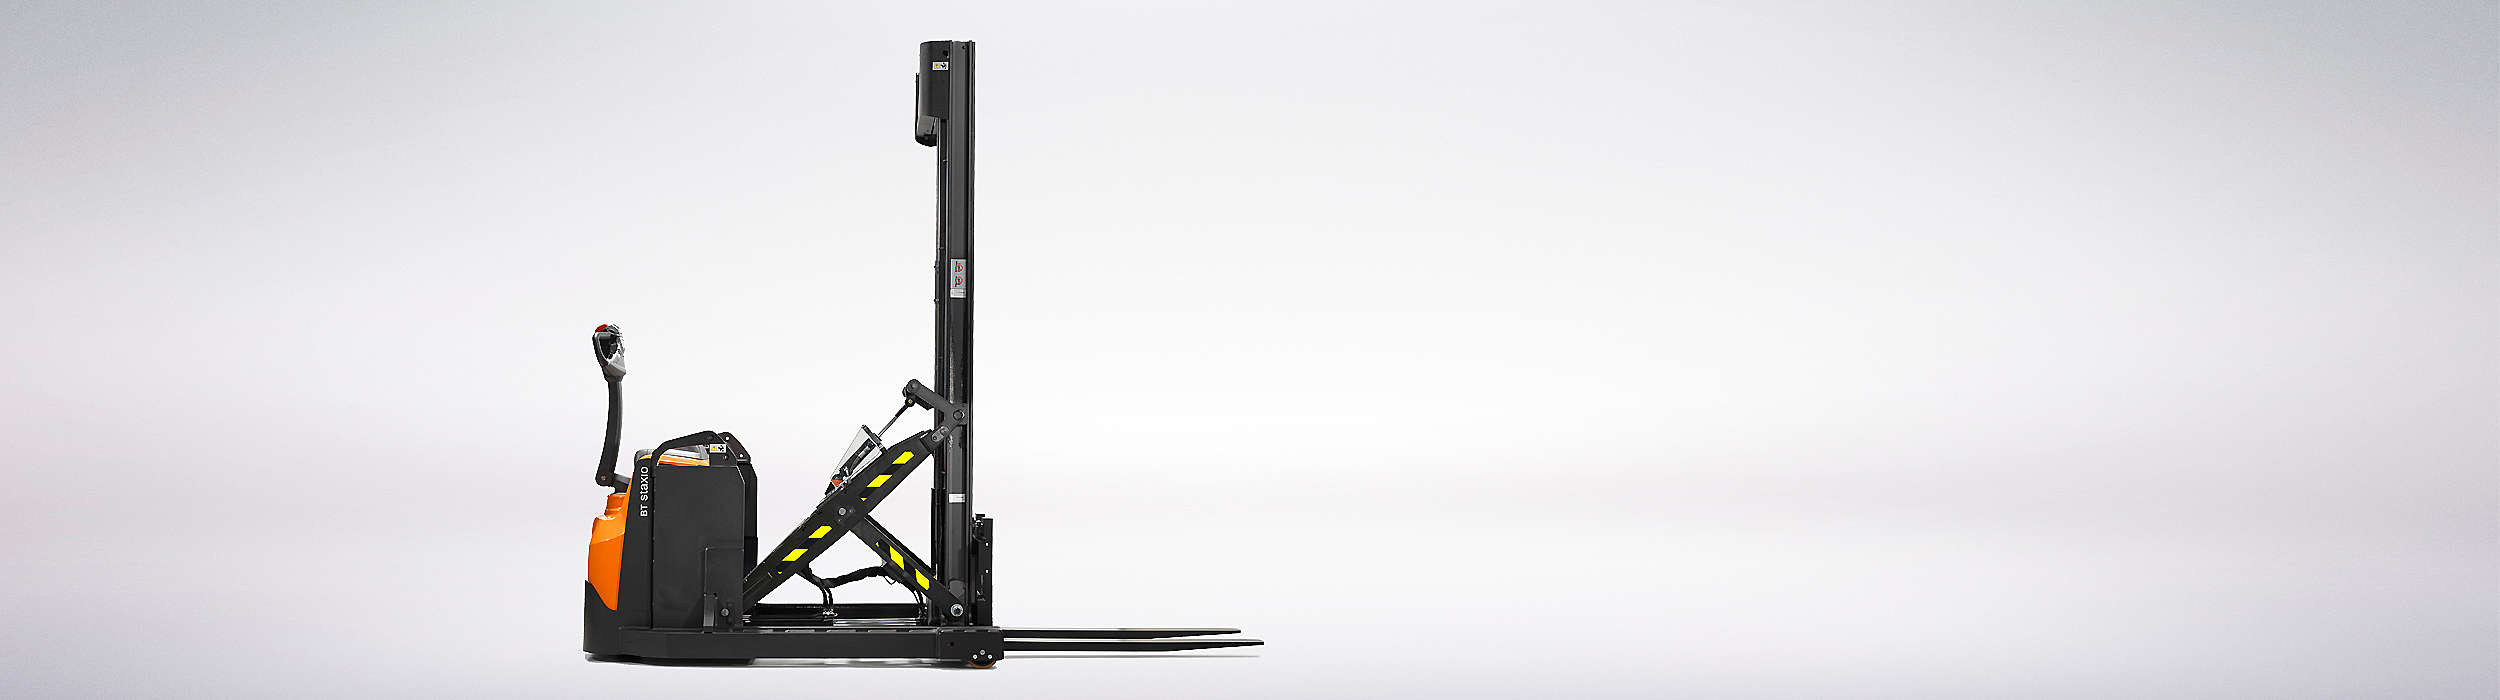 SWE & SPE XR(D)series - Compact as a stacker, flexible as a reach truck.